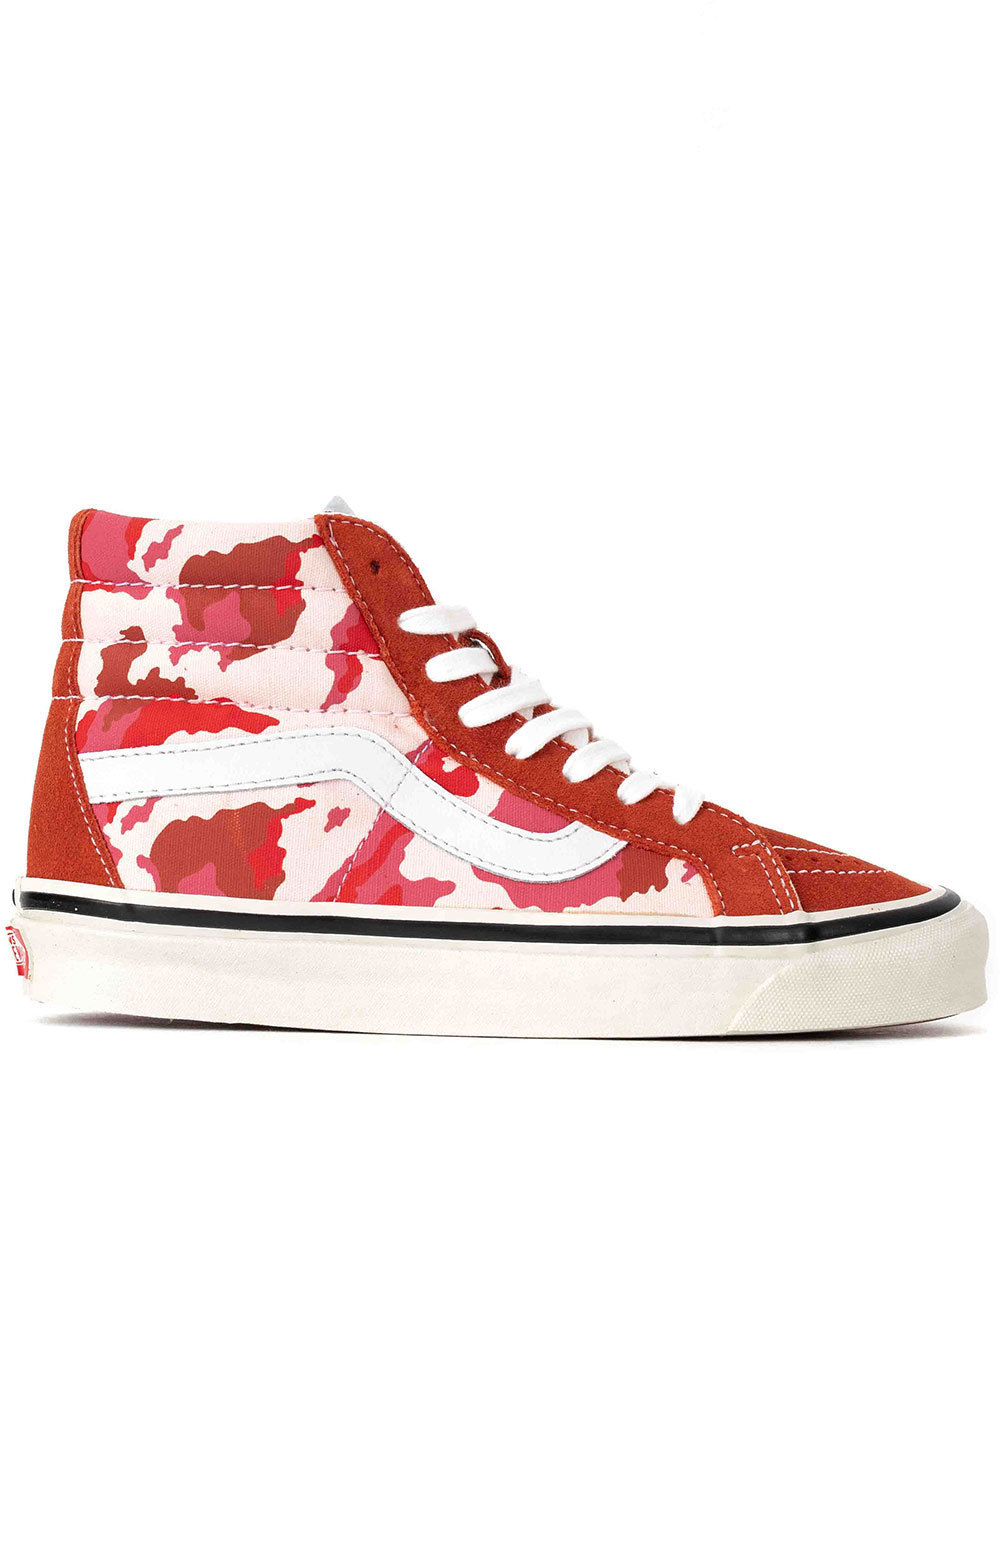 (8GFV7H) Anaheim Factory Sk8-Hi DX Shoe - Camo/Red